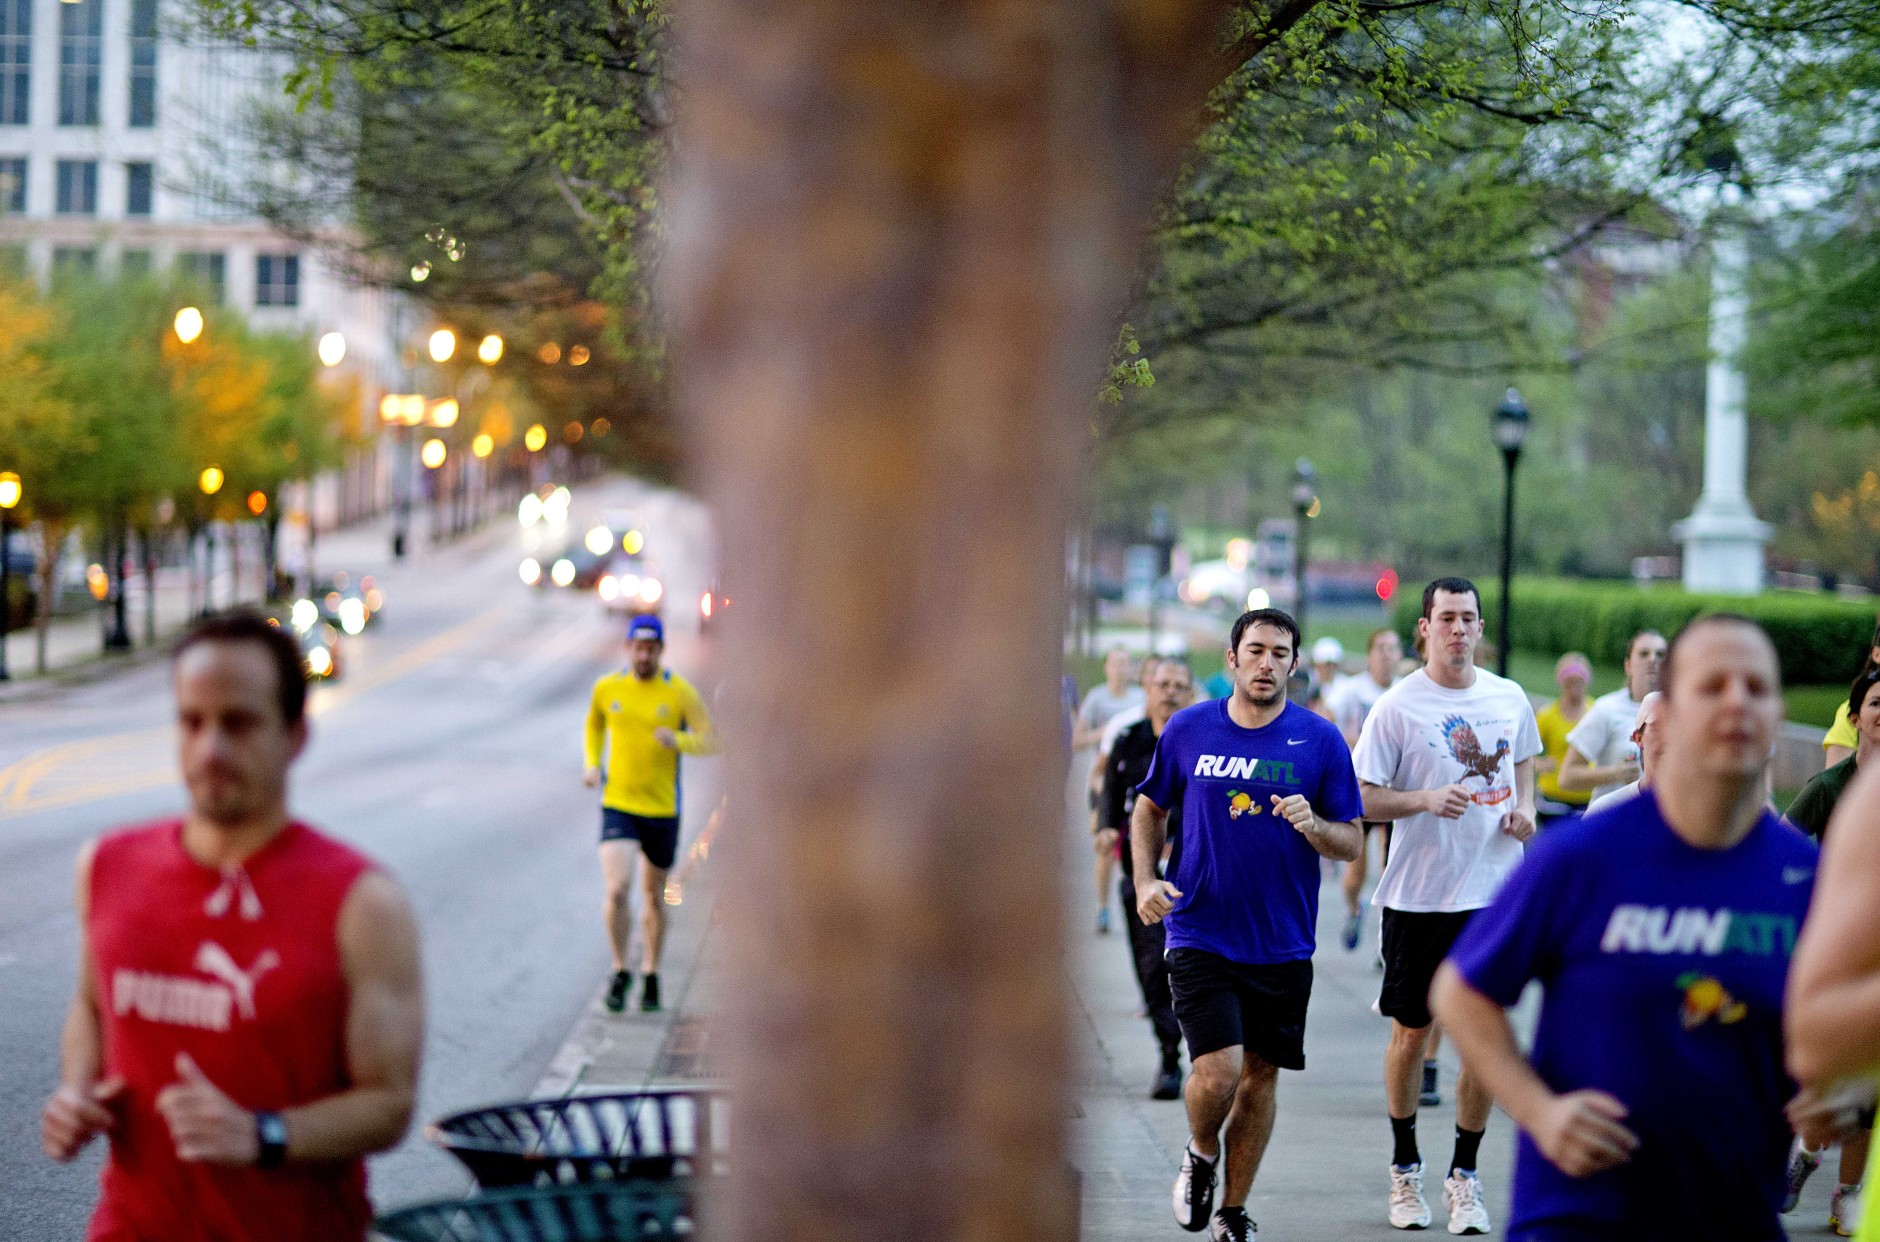 Held each July in Atlanta, the Peachtree Road Race is the largest 10K race in the world.  (AP Photo/David Goldman)